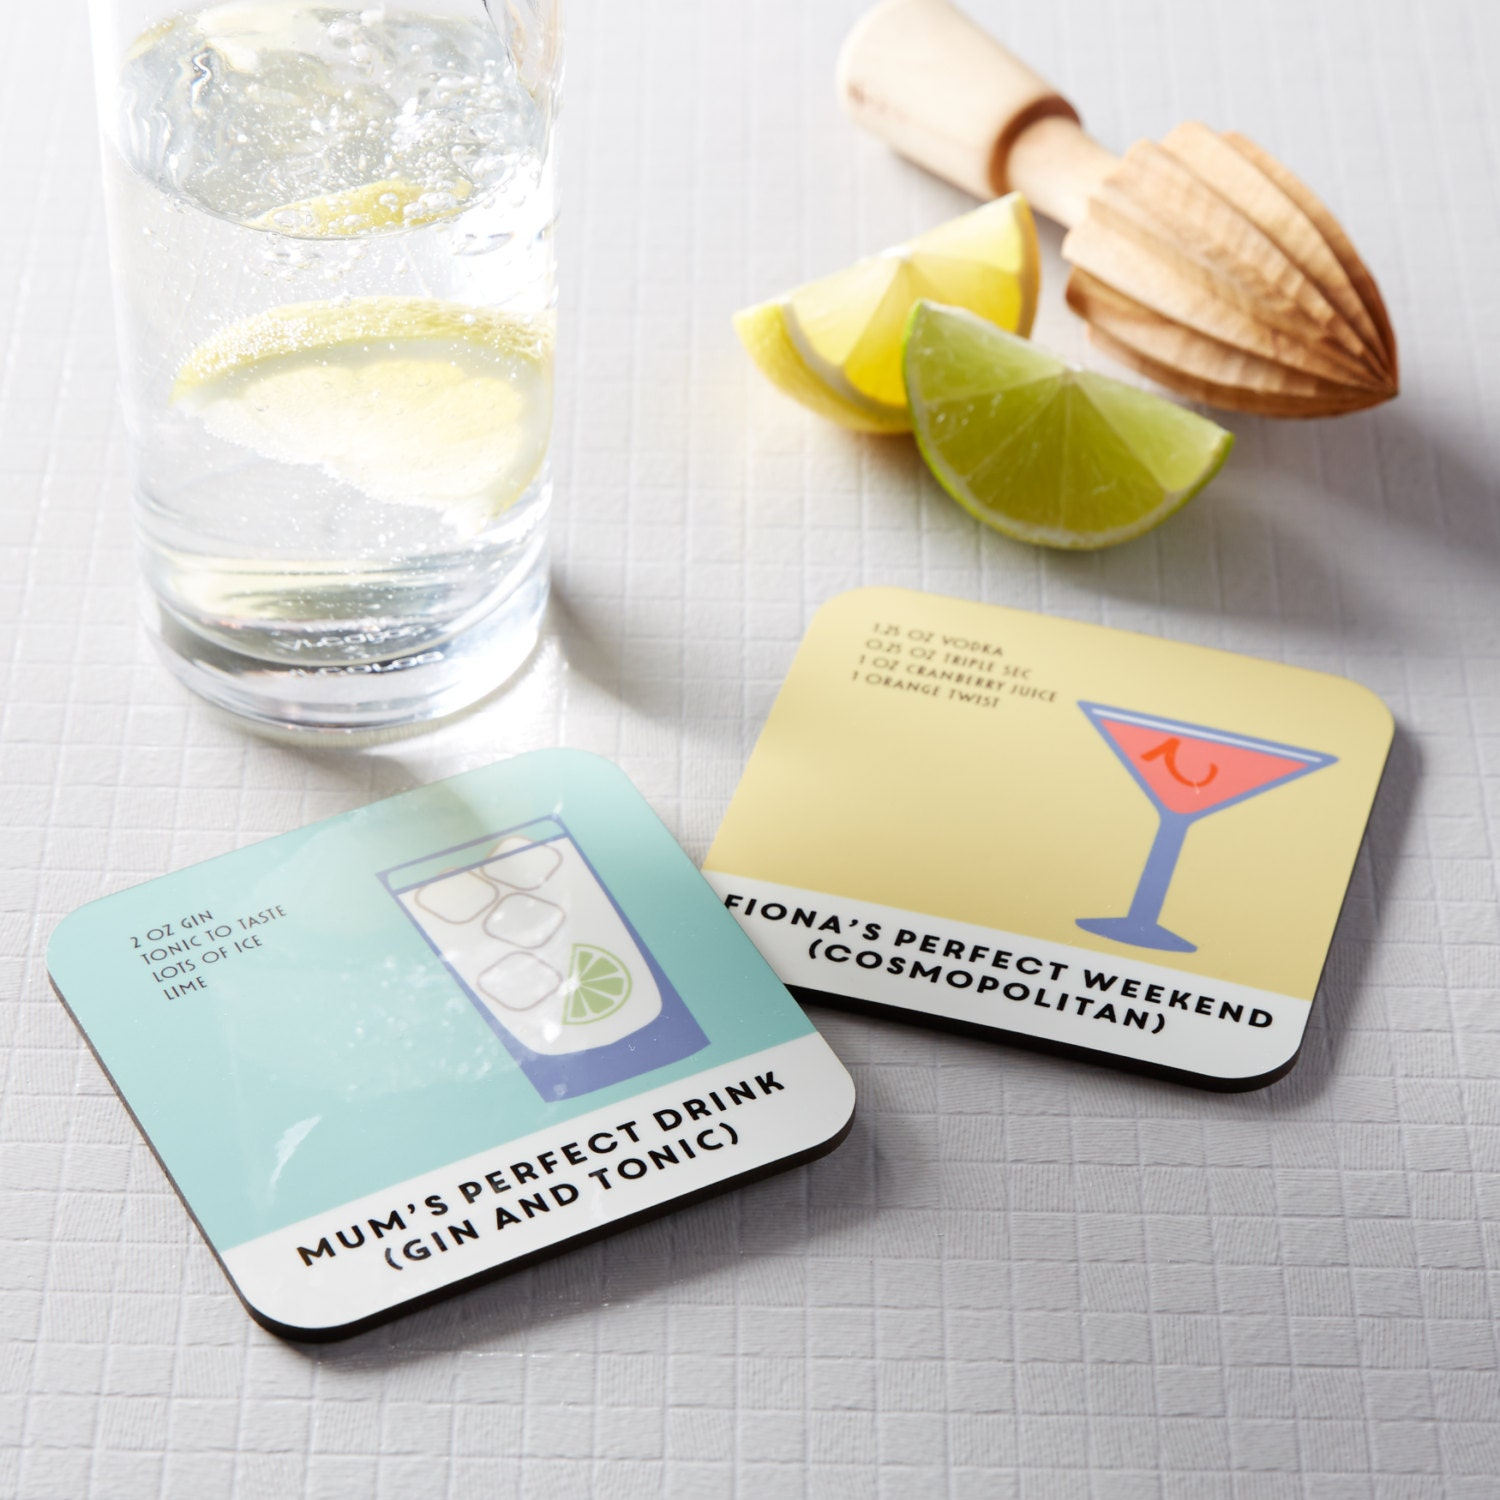 Gin And Tonic Drink Coaster Gin Gift Drinks Coaster